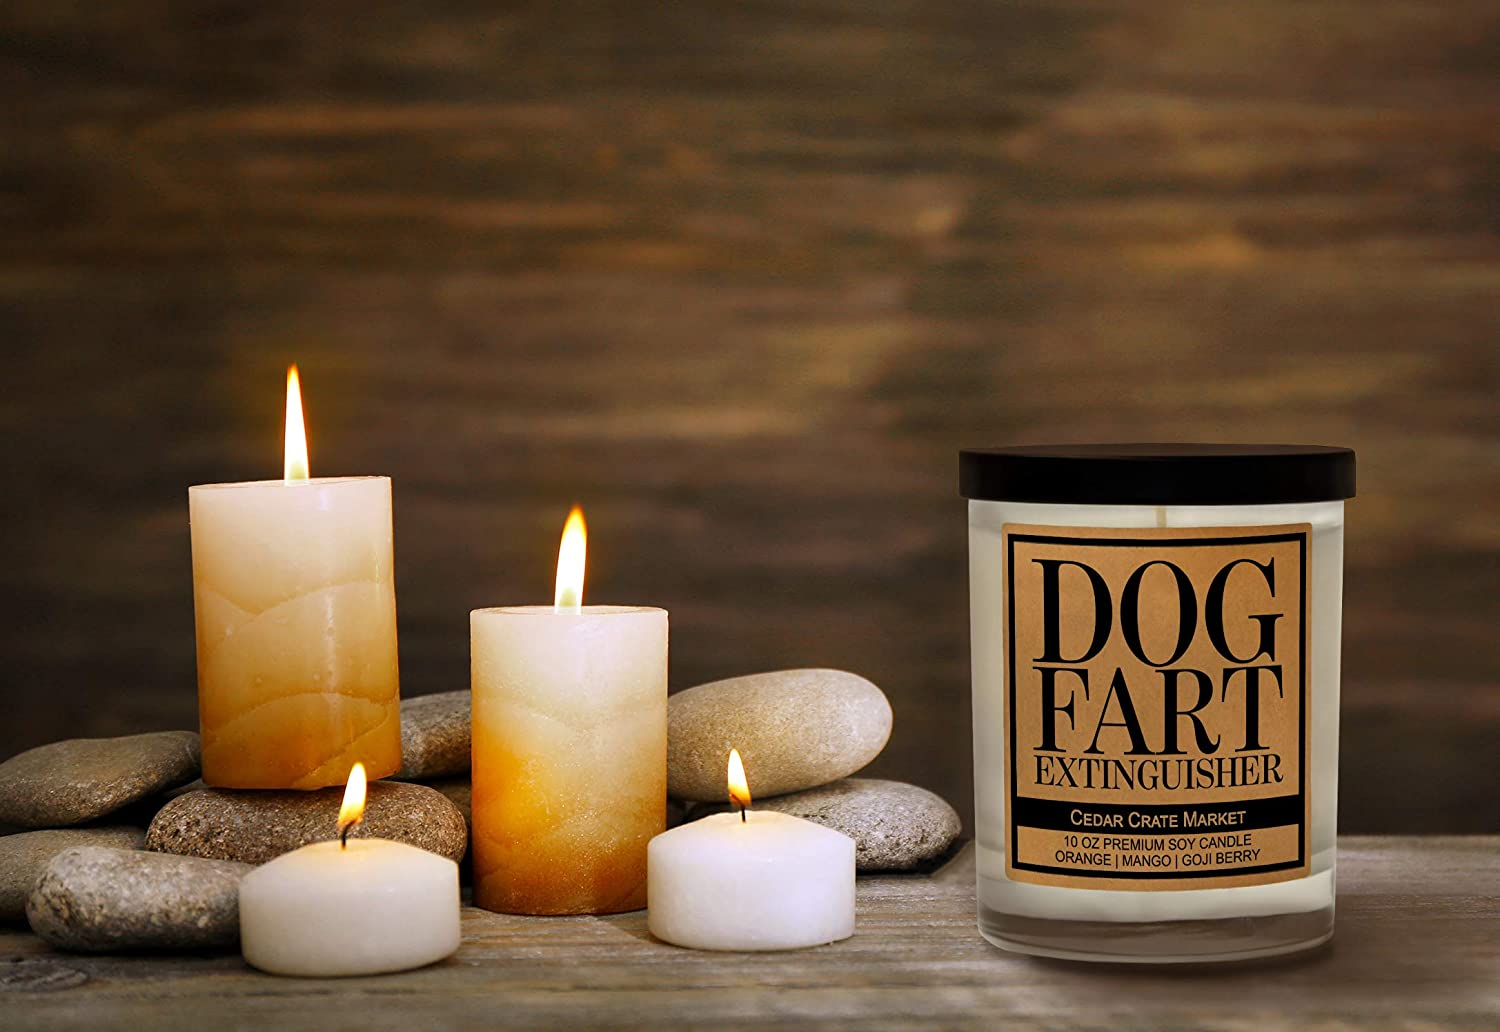 Dog Fart Dog Candle Vanilla Candle Funny Candle Joke Gift Gift for Dog Lovers Fun Gift for Men Scented Candle Gift for Dad DNFPP